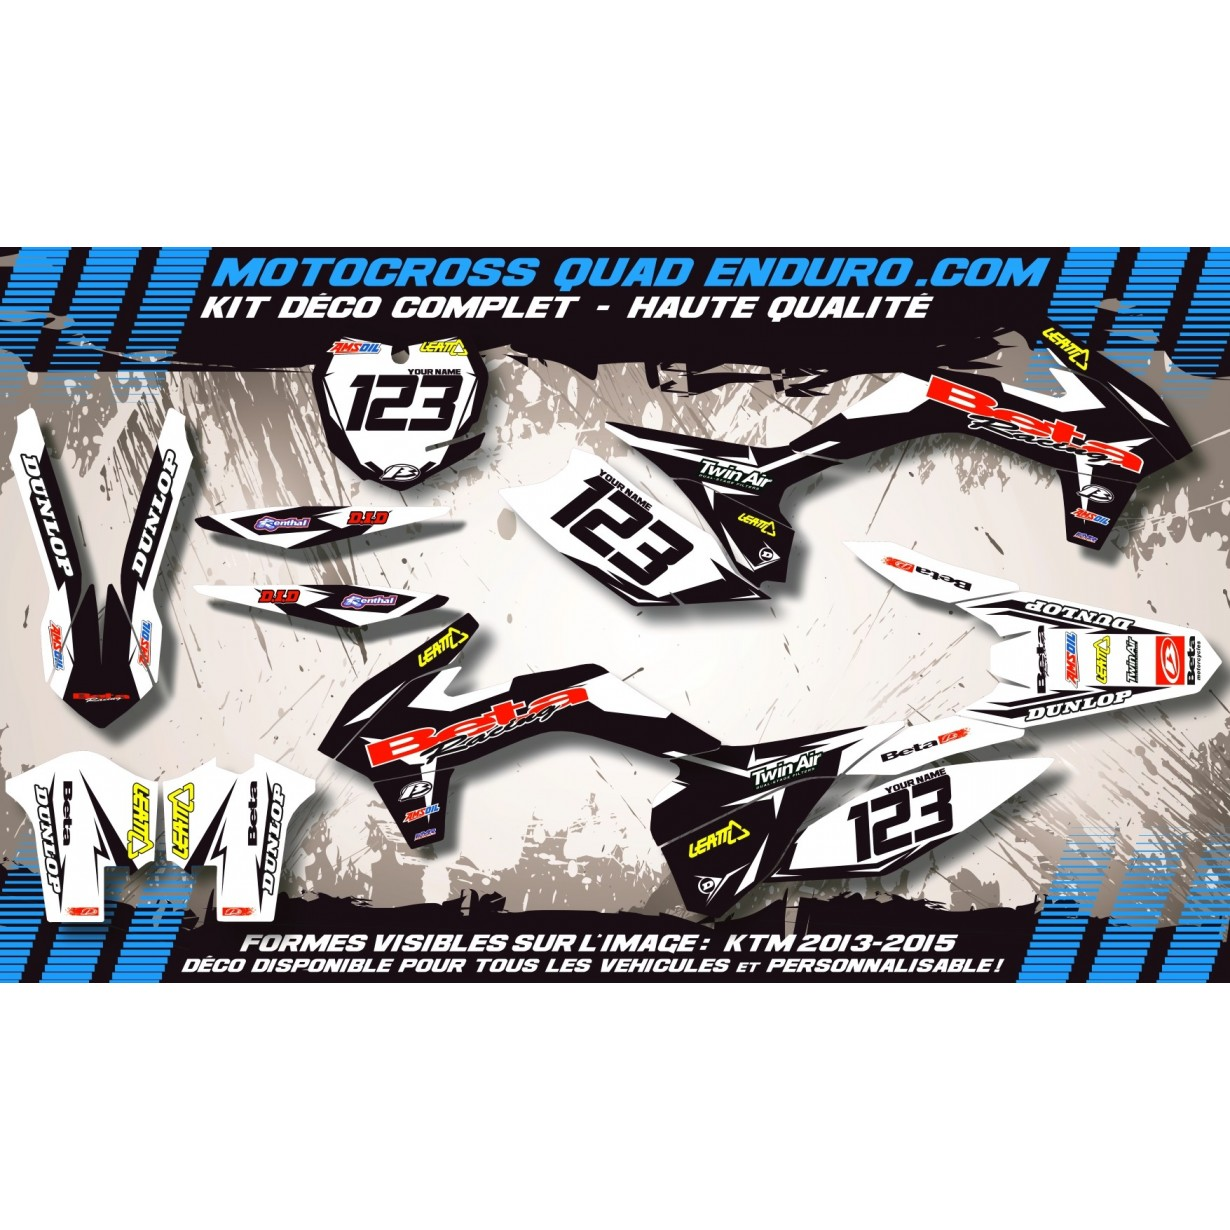 KIT DÉCO Perso 50 RR enduro 2007 Factory Black Edition MA10GB